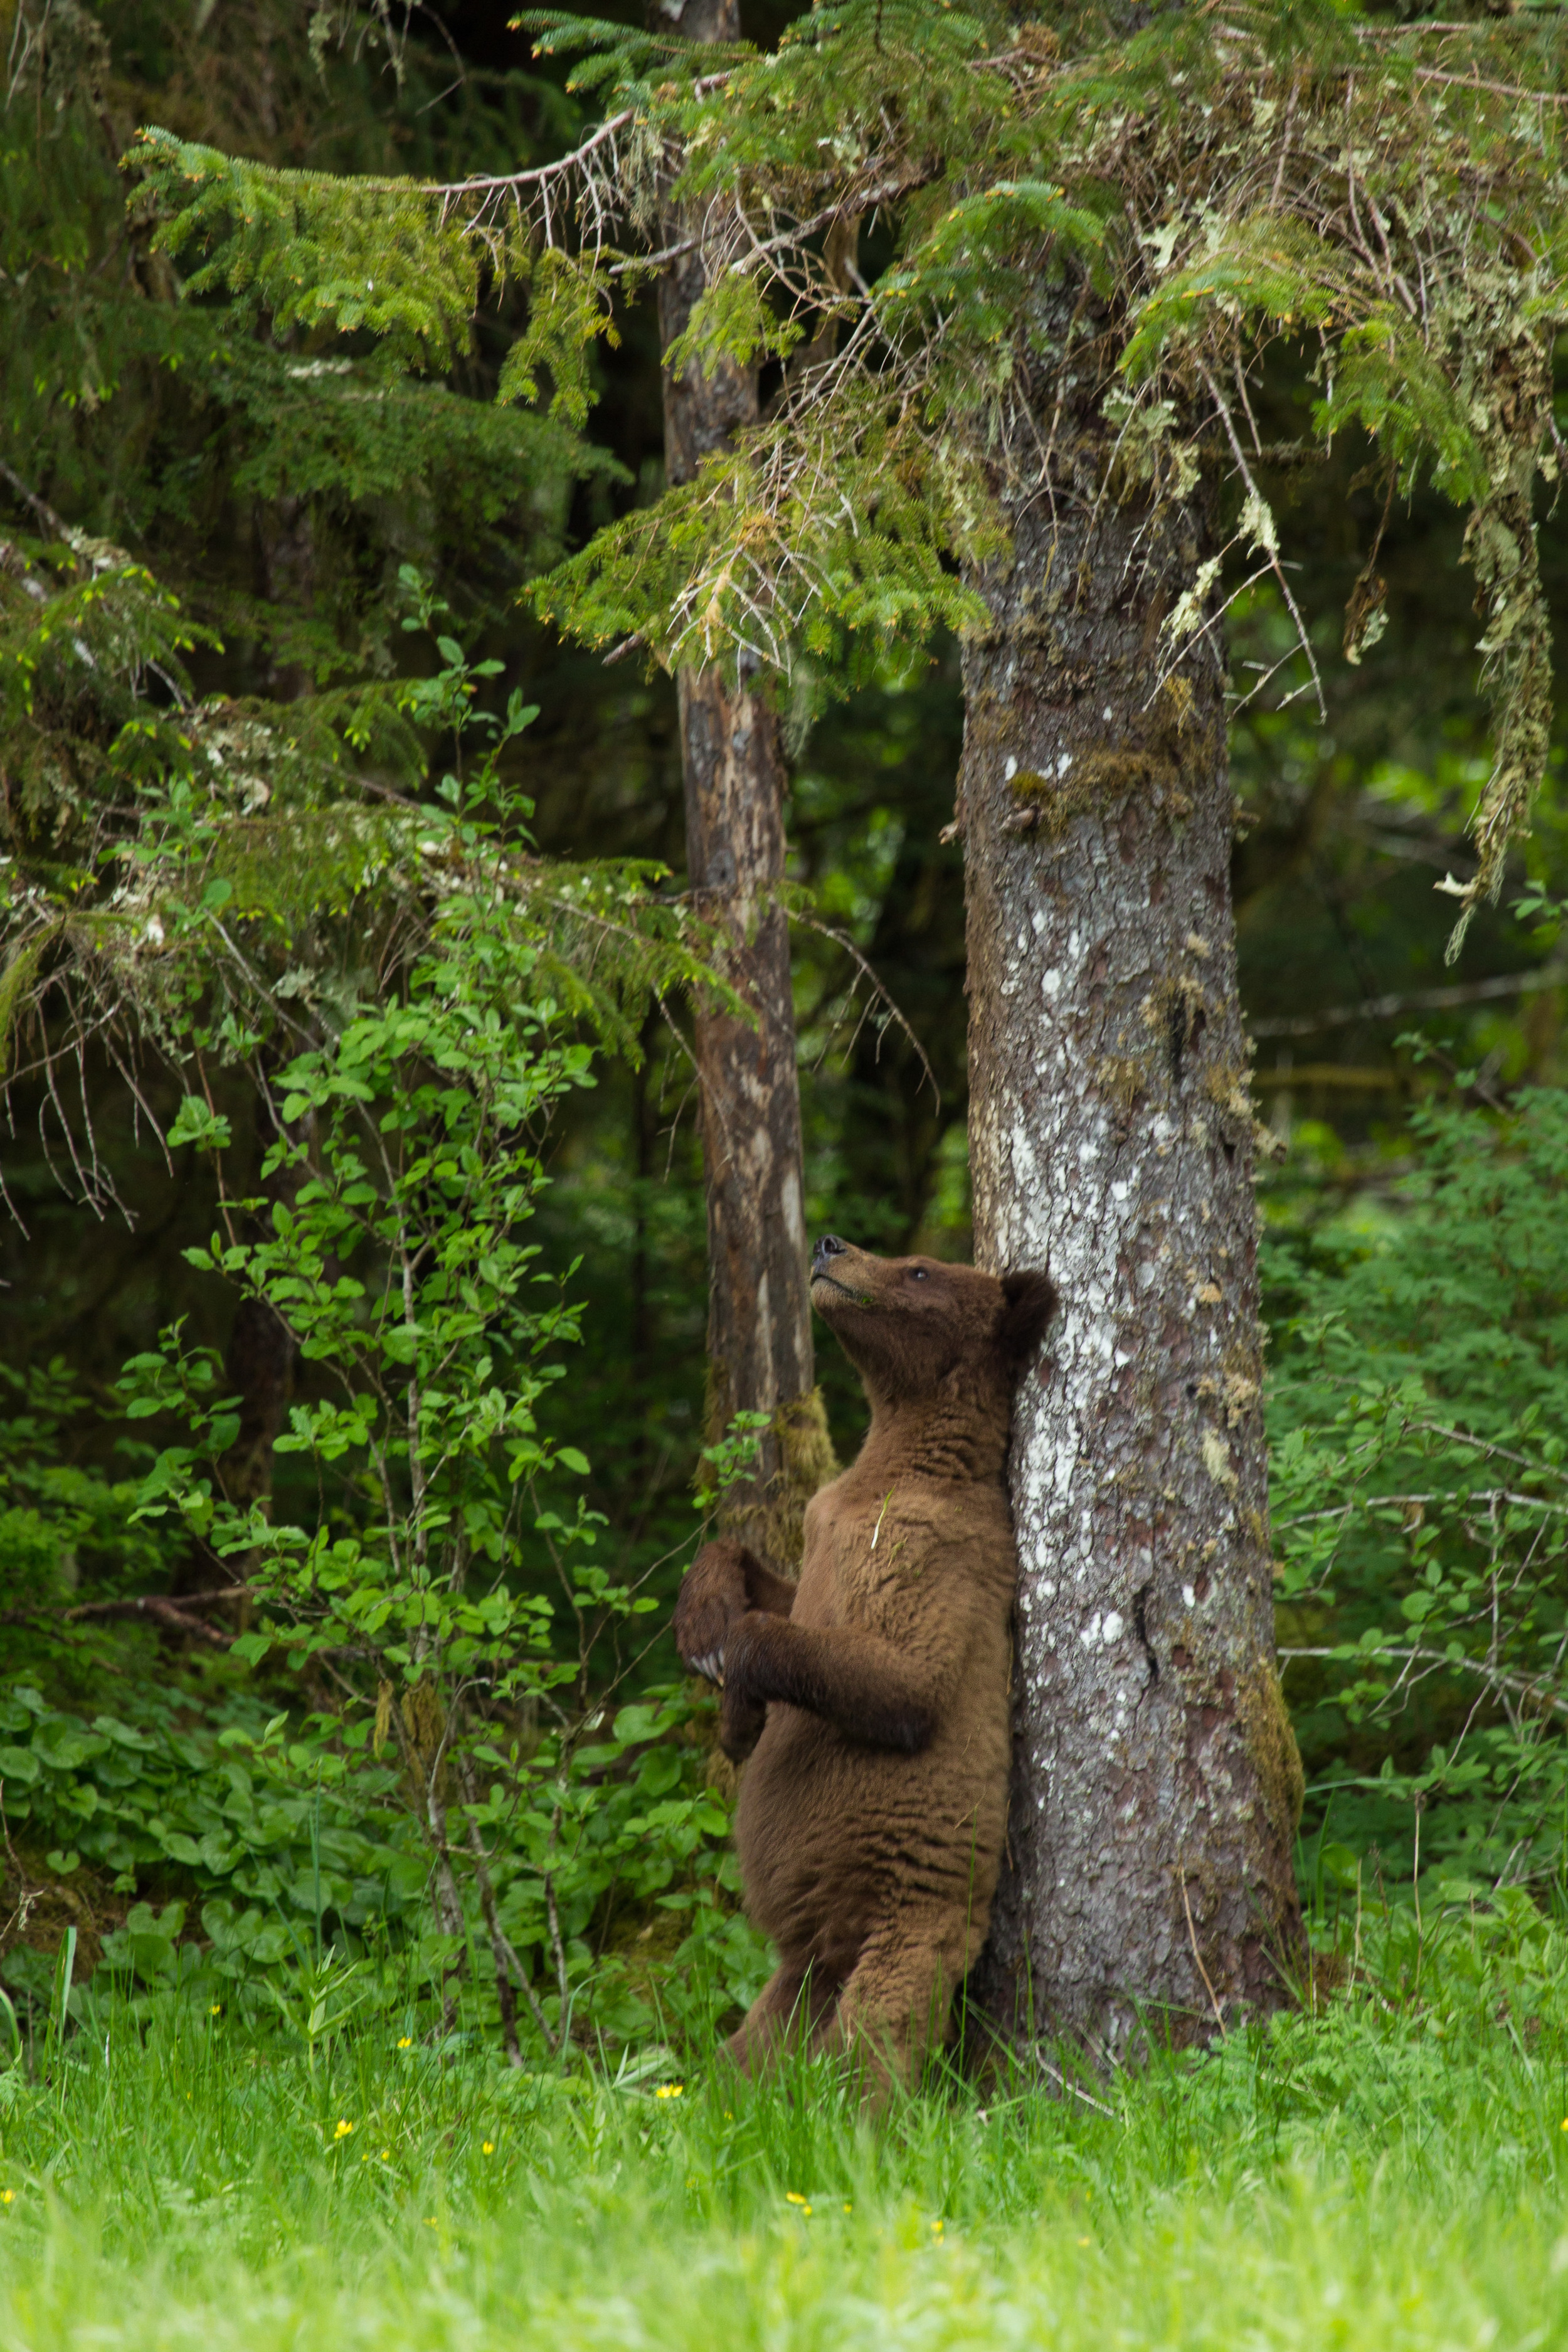 Brown Bear Cub with an Itch